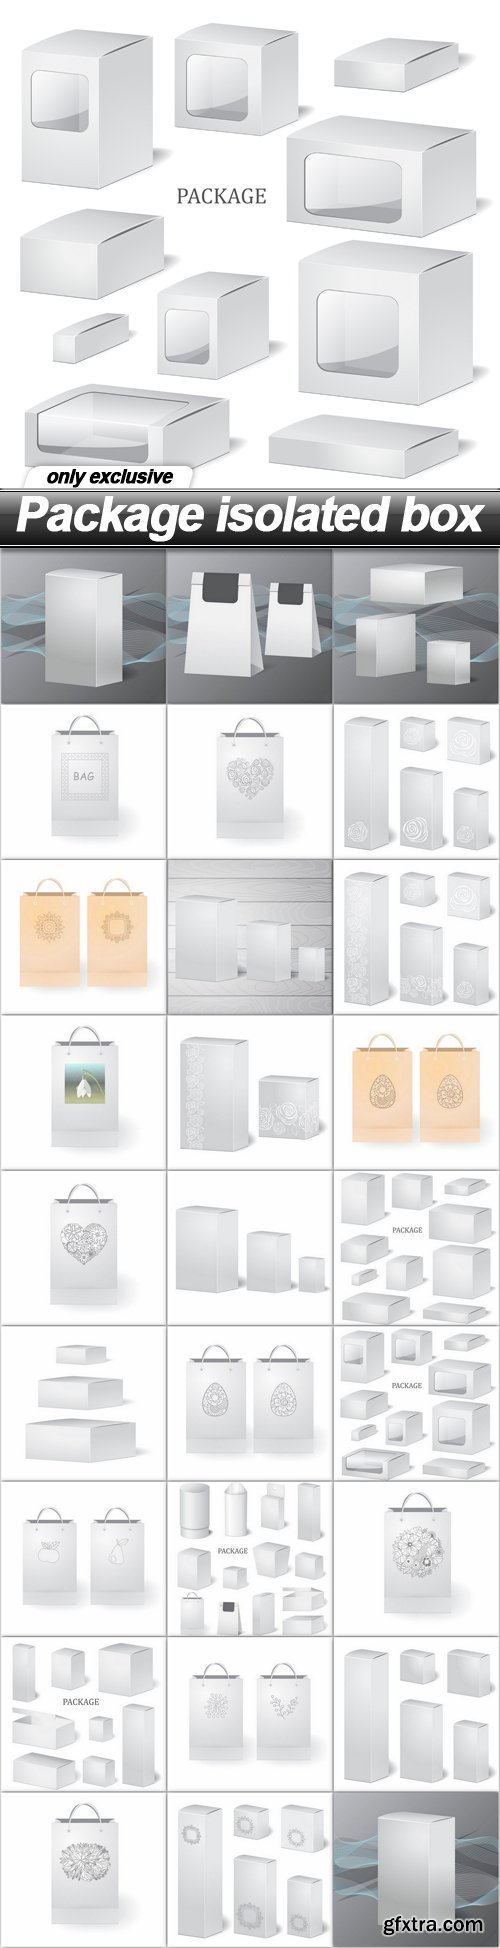 Package isolated box - 26 EPS